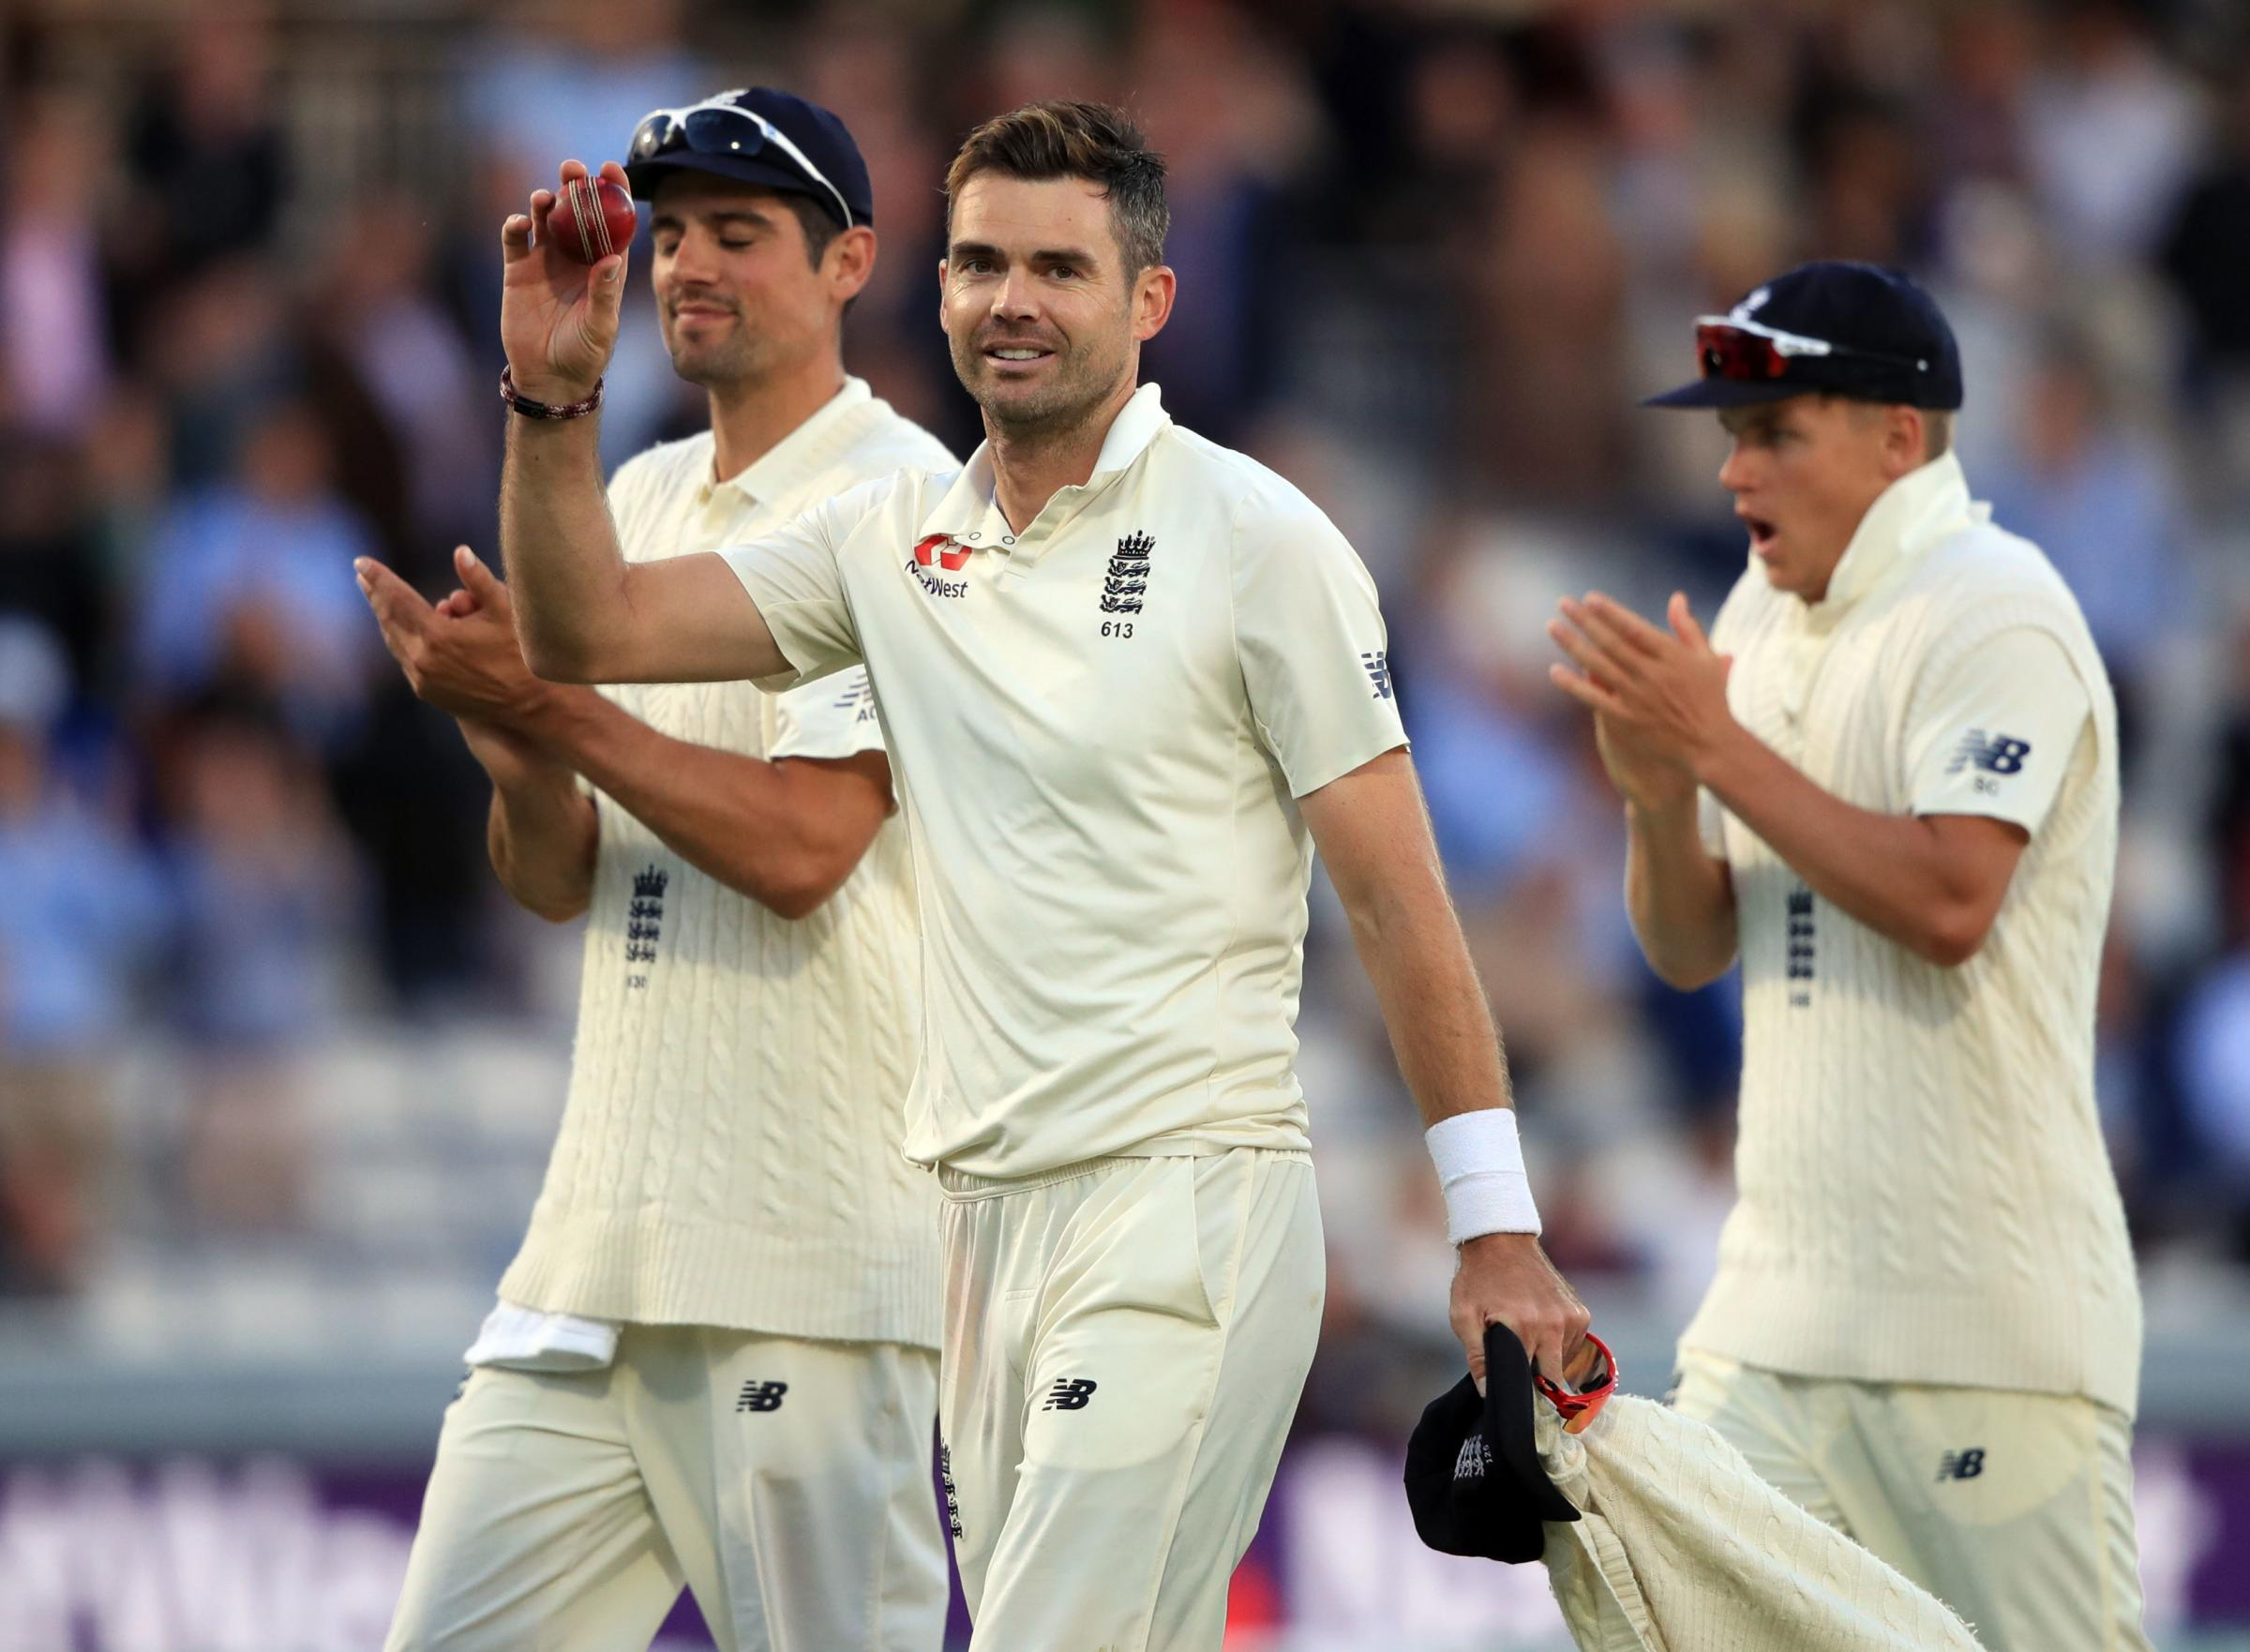 England's James Anderson celebrates his five wicket haul  during day two of the Specsavers Second Test match at Lord's, London. PRESS ASSOCIATION Photo. Picture date: Friday August 10, 2018. See PA story CRICKET England. Photo cred